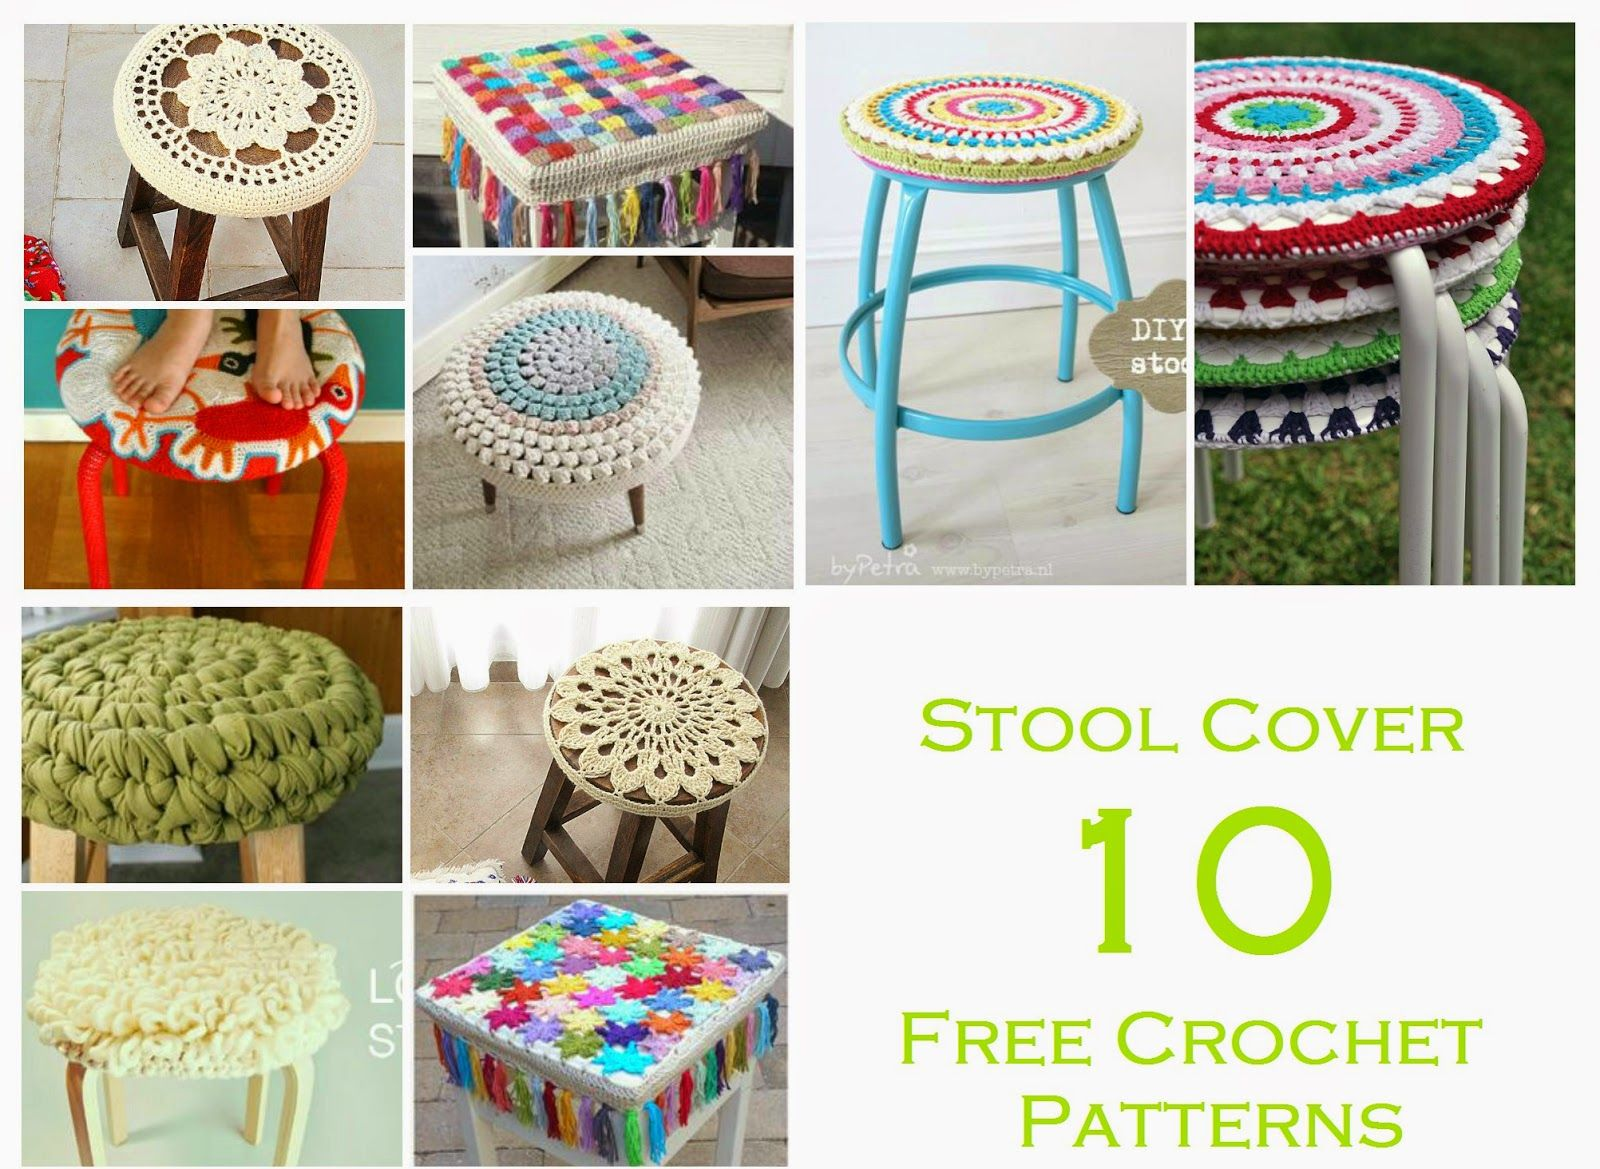 Stool Cover ~ 10 Free Crochet Patterns (Happiness Crafty)